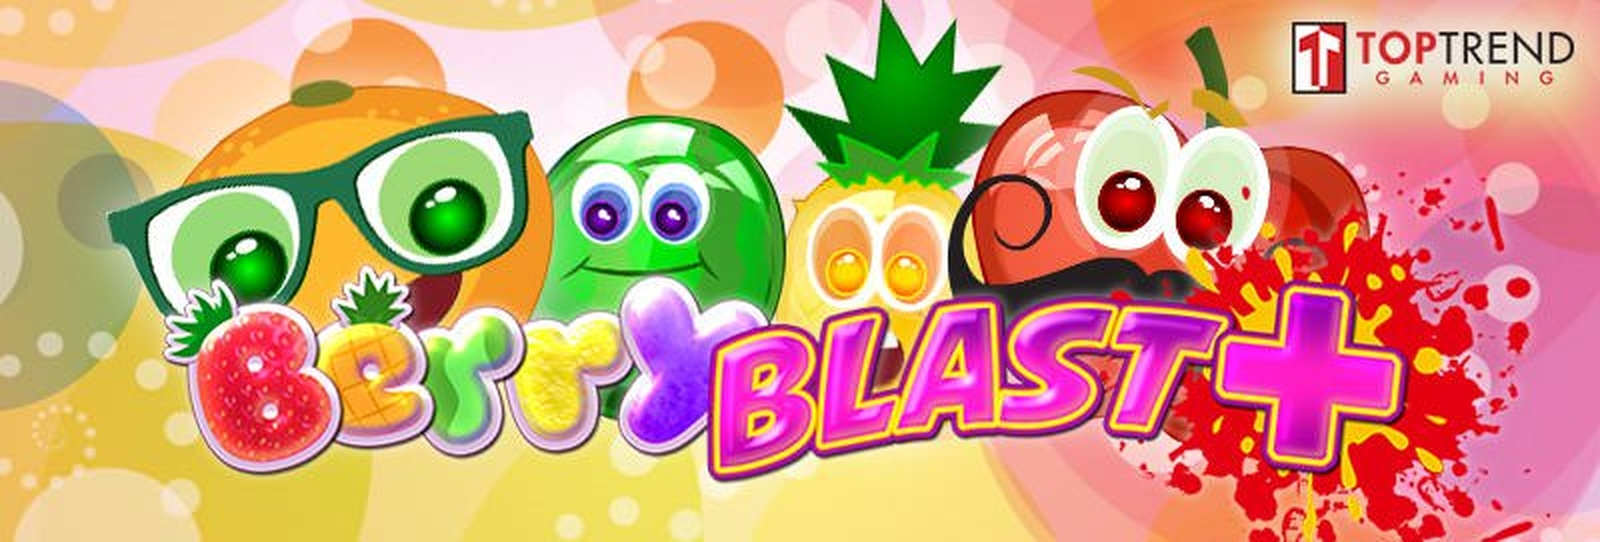 The Berry Blast Plus Online Slot Demo Game by Top Trend Gaming